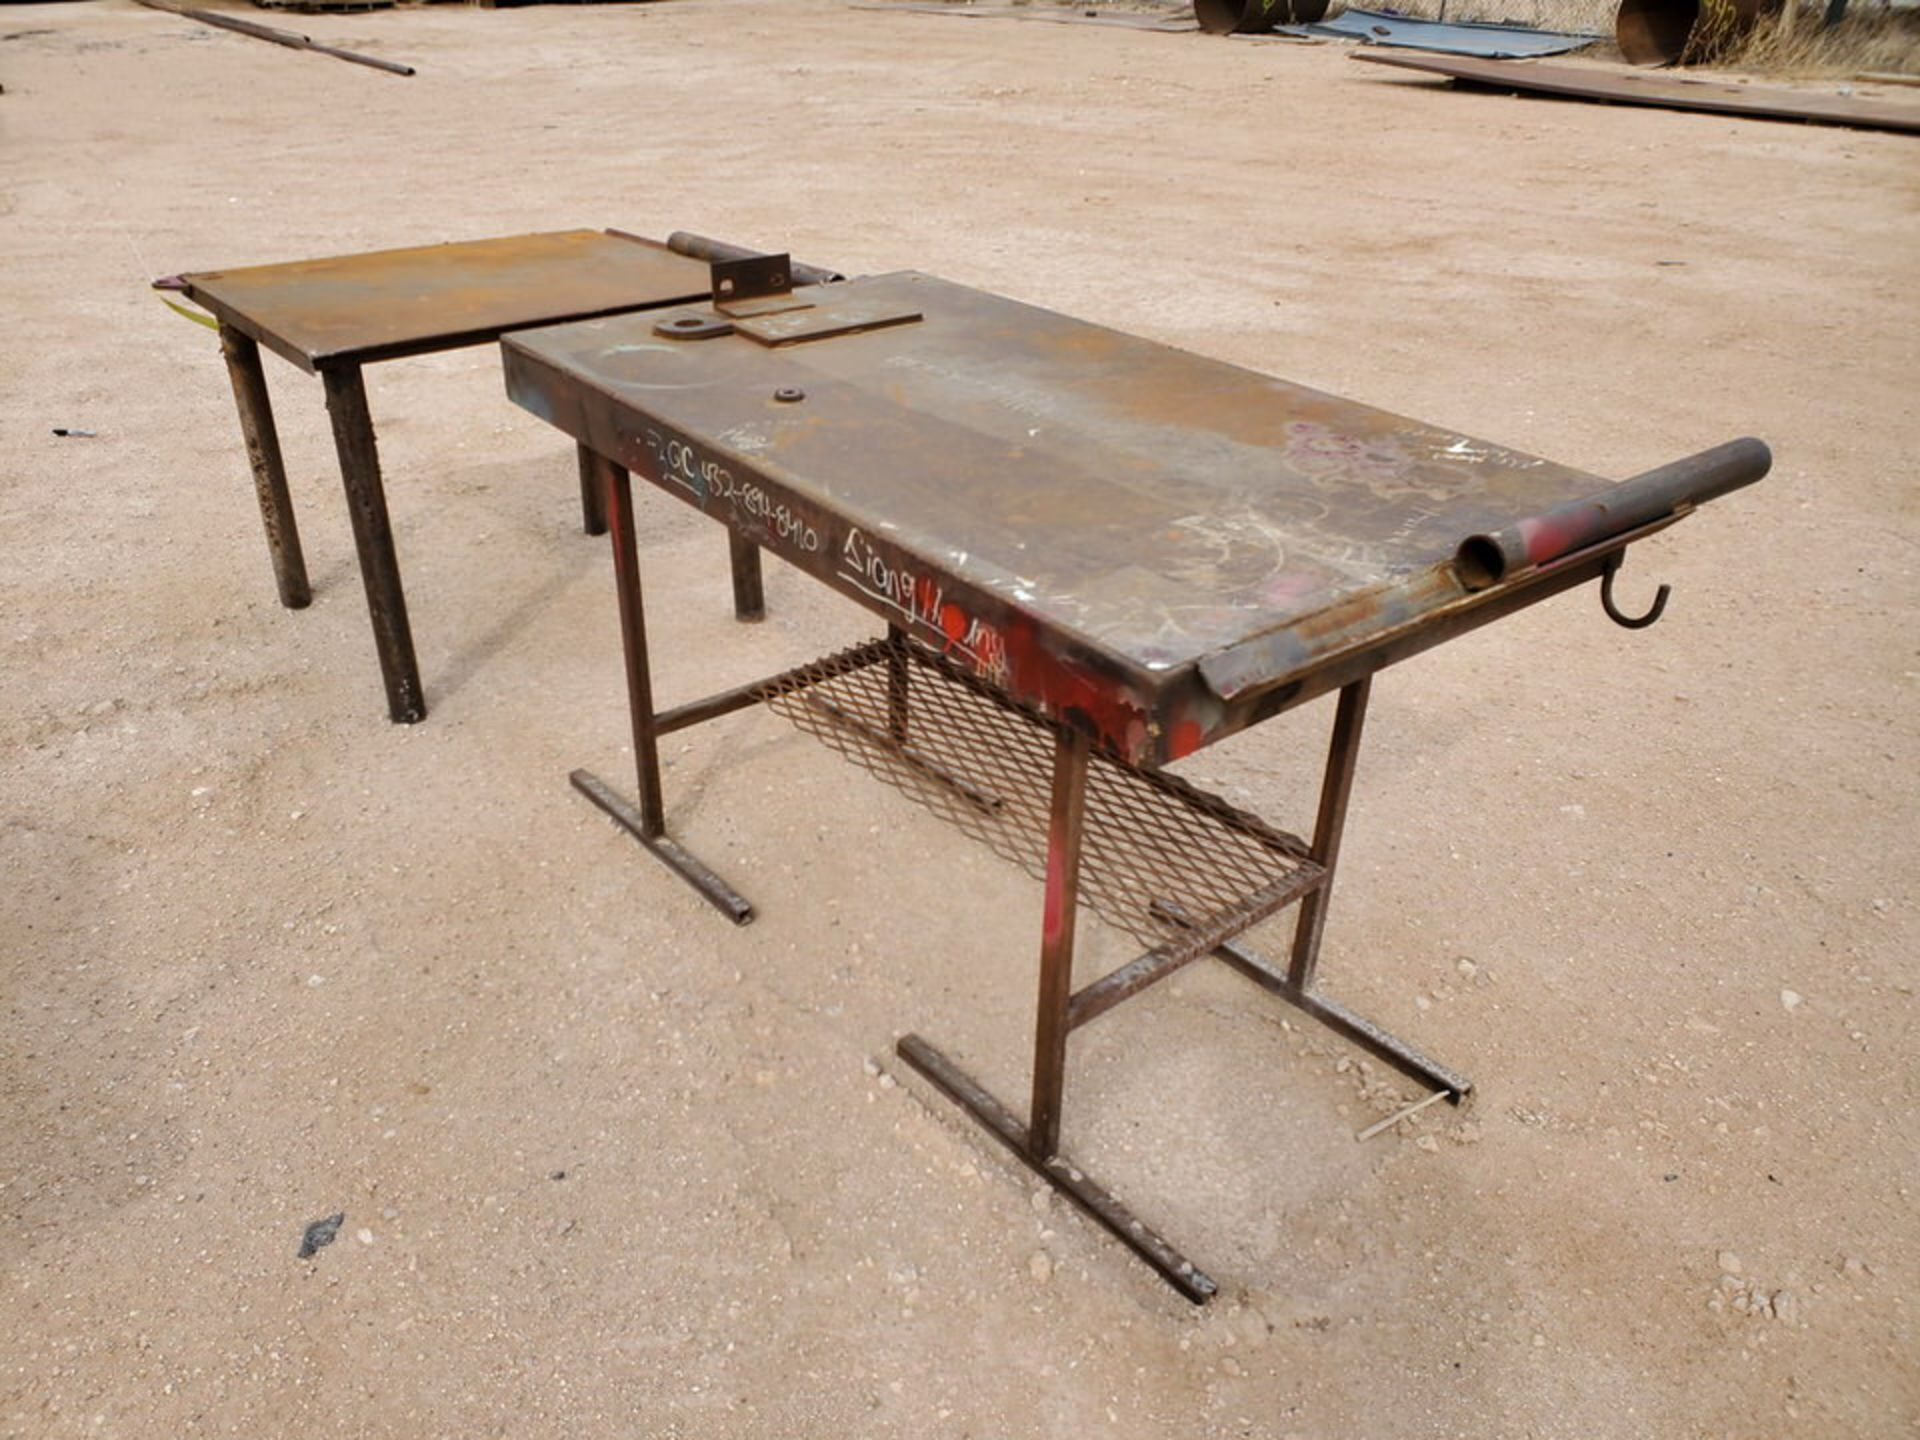 """(2) Stl Welding Tables (1) 36"""" x 43"""" x 30"""", (1) 60"""" x 29"""" 36"""" - Image 4 of 6"""